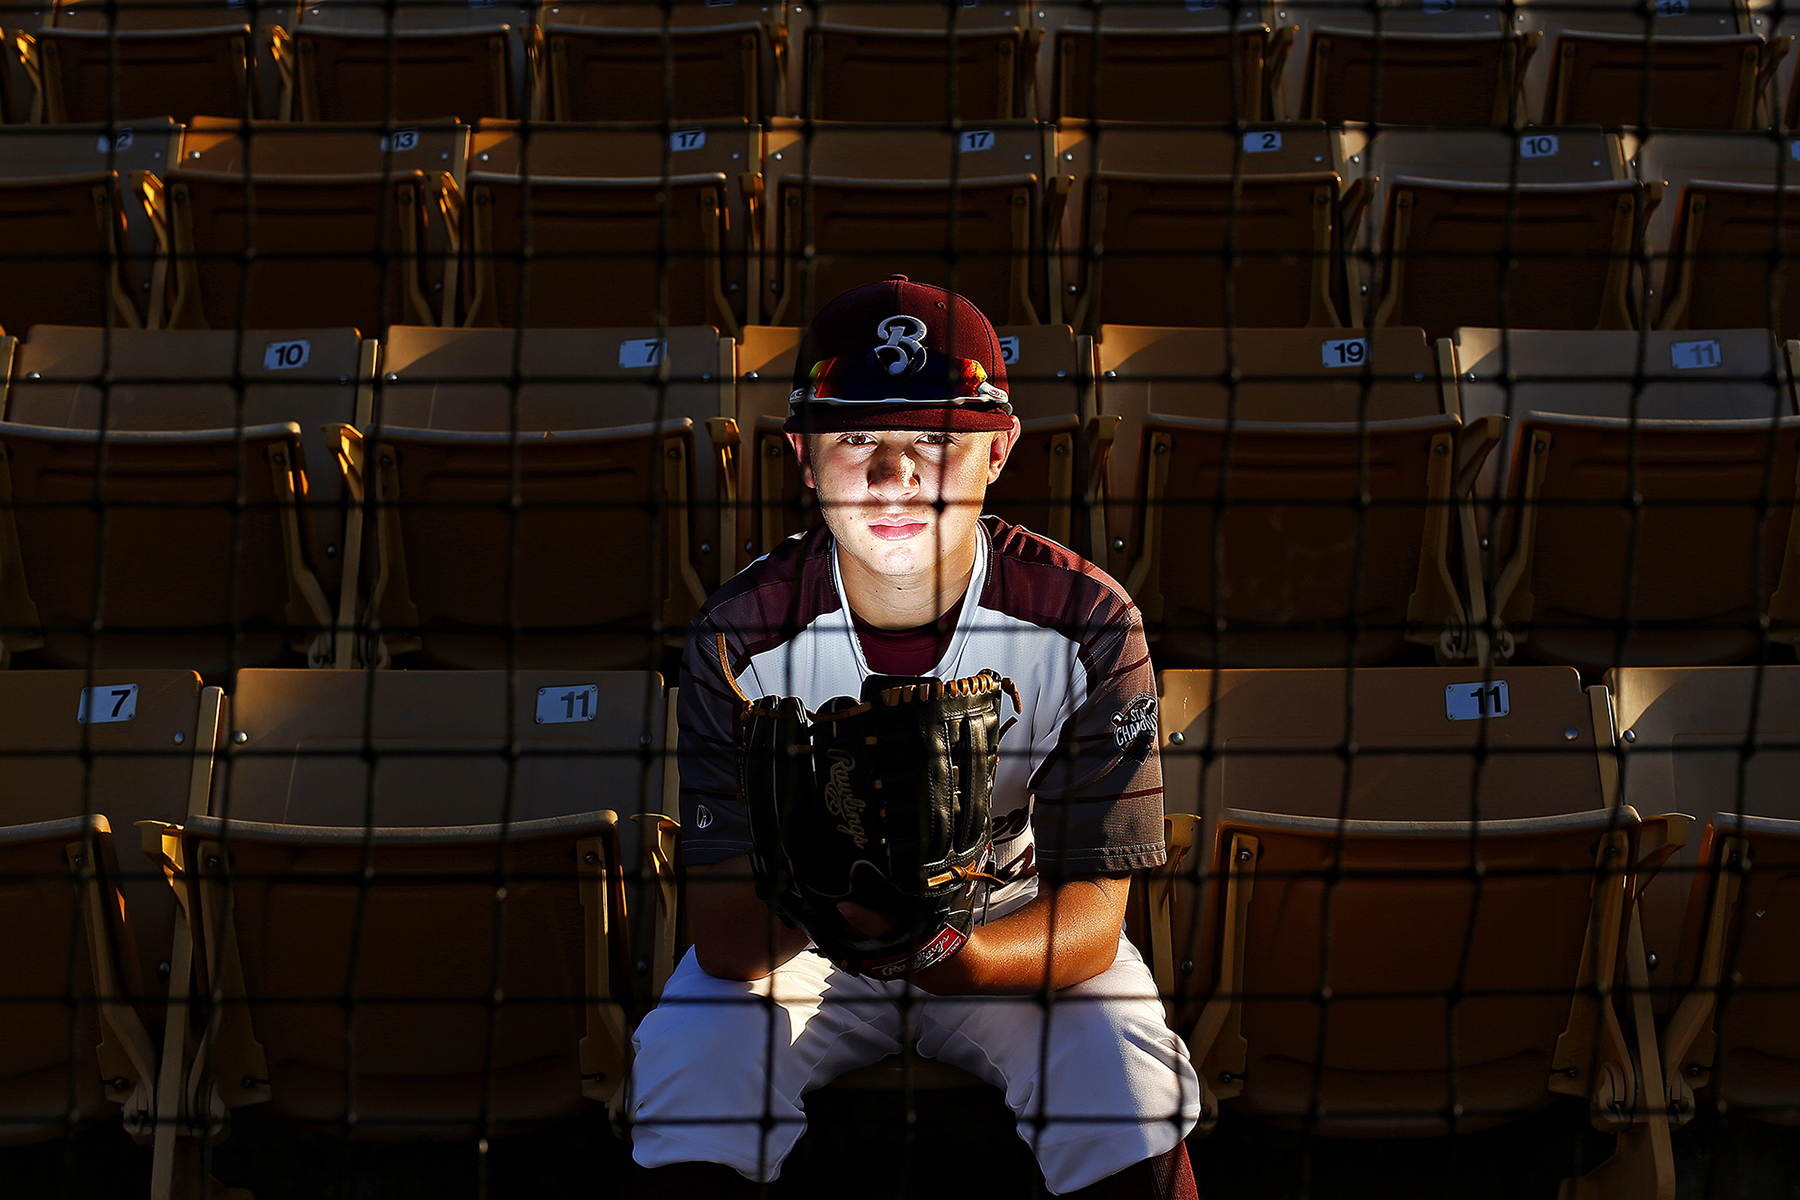 12-year-old baseball player Cross Kubik poses for a portrait at Kickapoo High School Baseball Field in Springfield, Mo. on Oct. 4, 2016. Kubik developed a tumor in his abdomen at 22-months-old. He was not expected to survive, but after treatment at St. Jude Children's Research Hospital he now lives a full life, which includes a promising future in baseball.